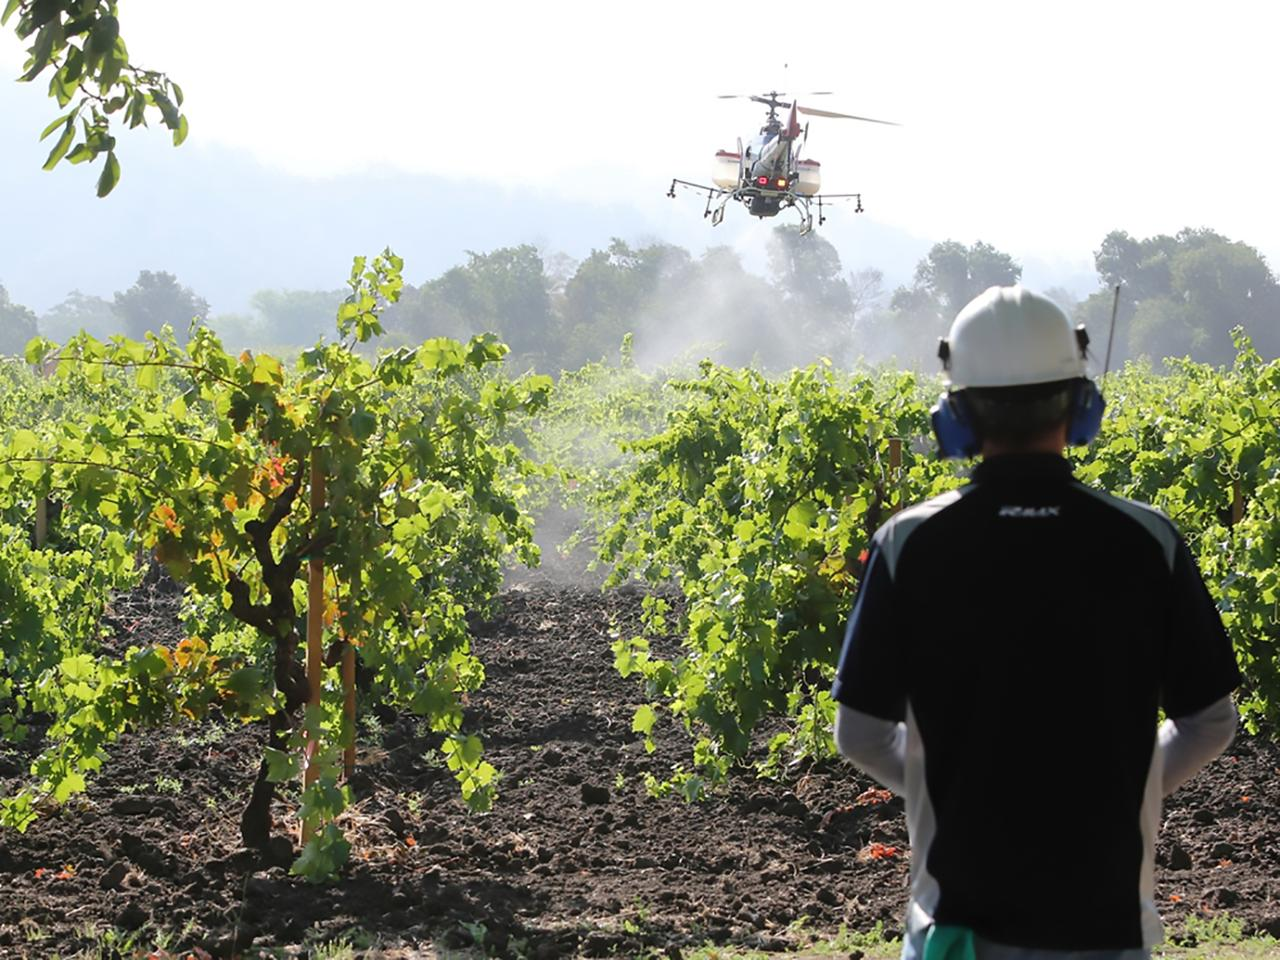 Yamaha's unmanned helicopters have now been engaged spraying agrochemicals since 1989, and Yamaha helicopters now spray more than 40 percent of the total rice paddy cultivation area in Japan